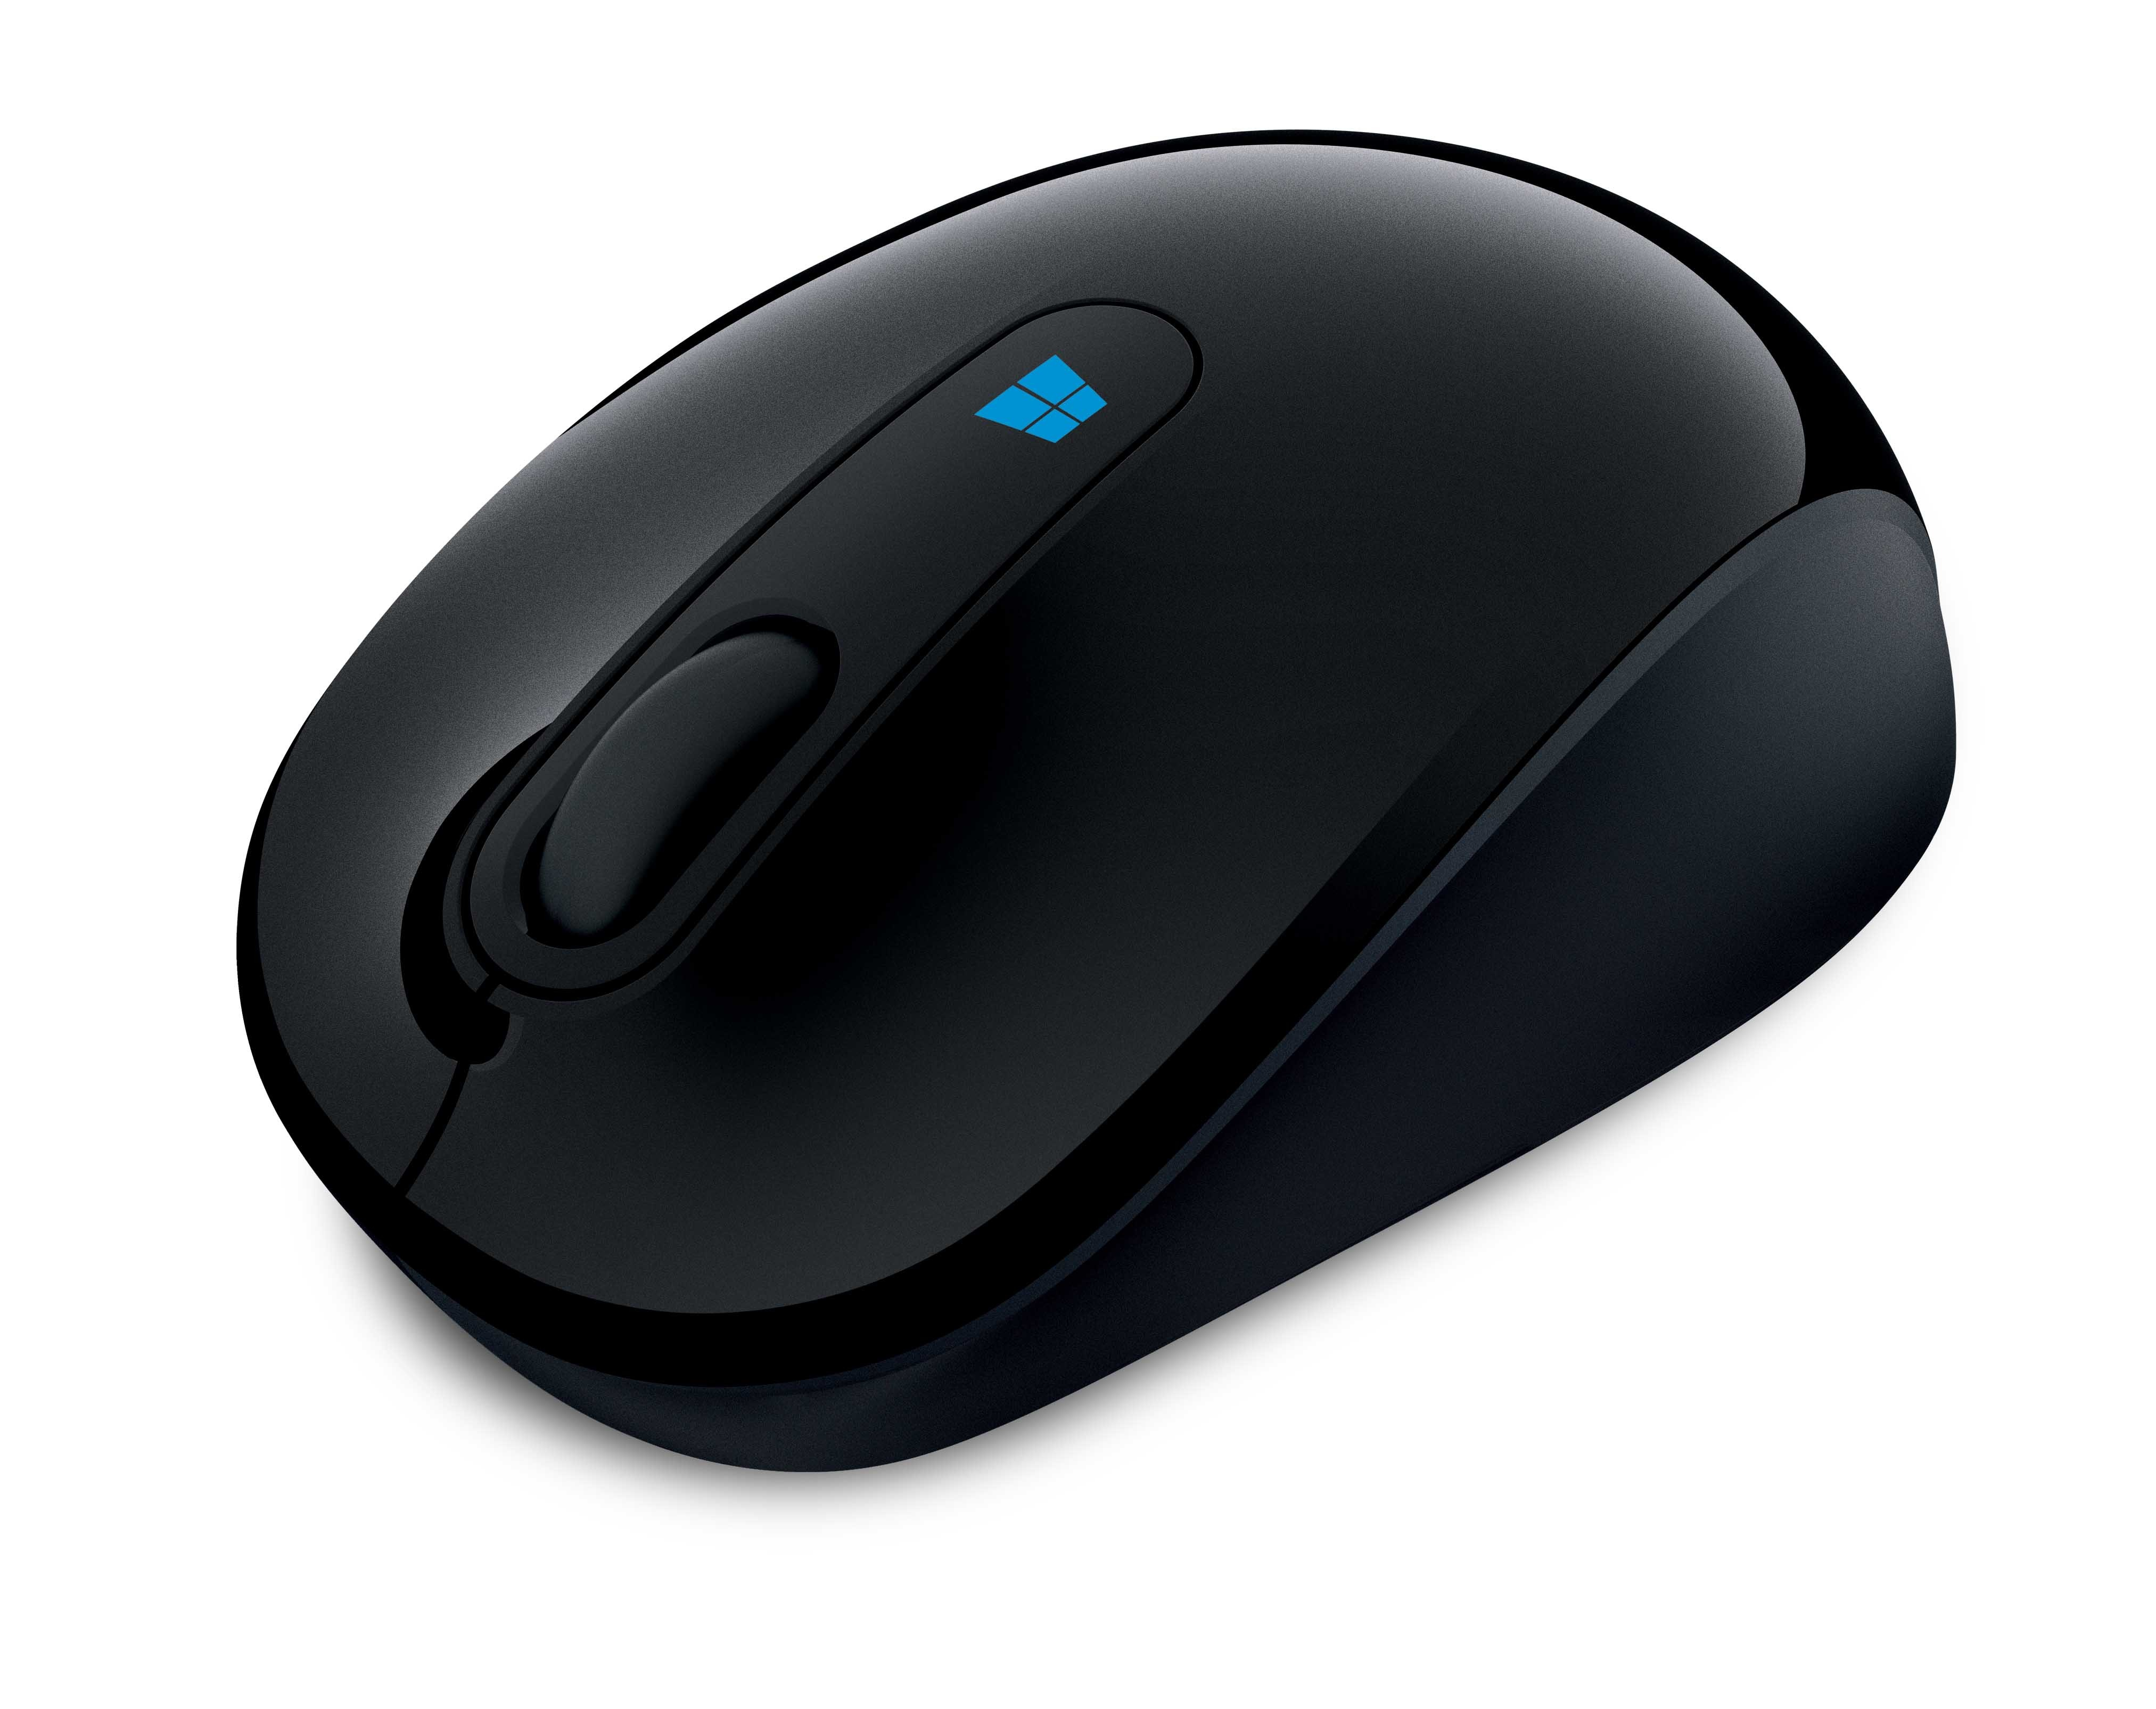 Mouse Hd